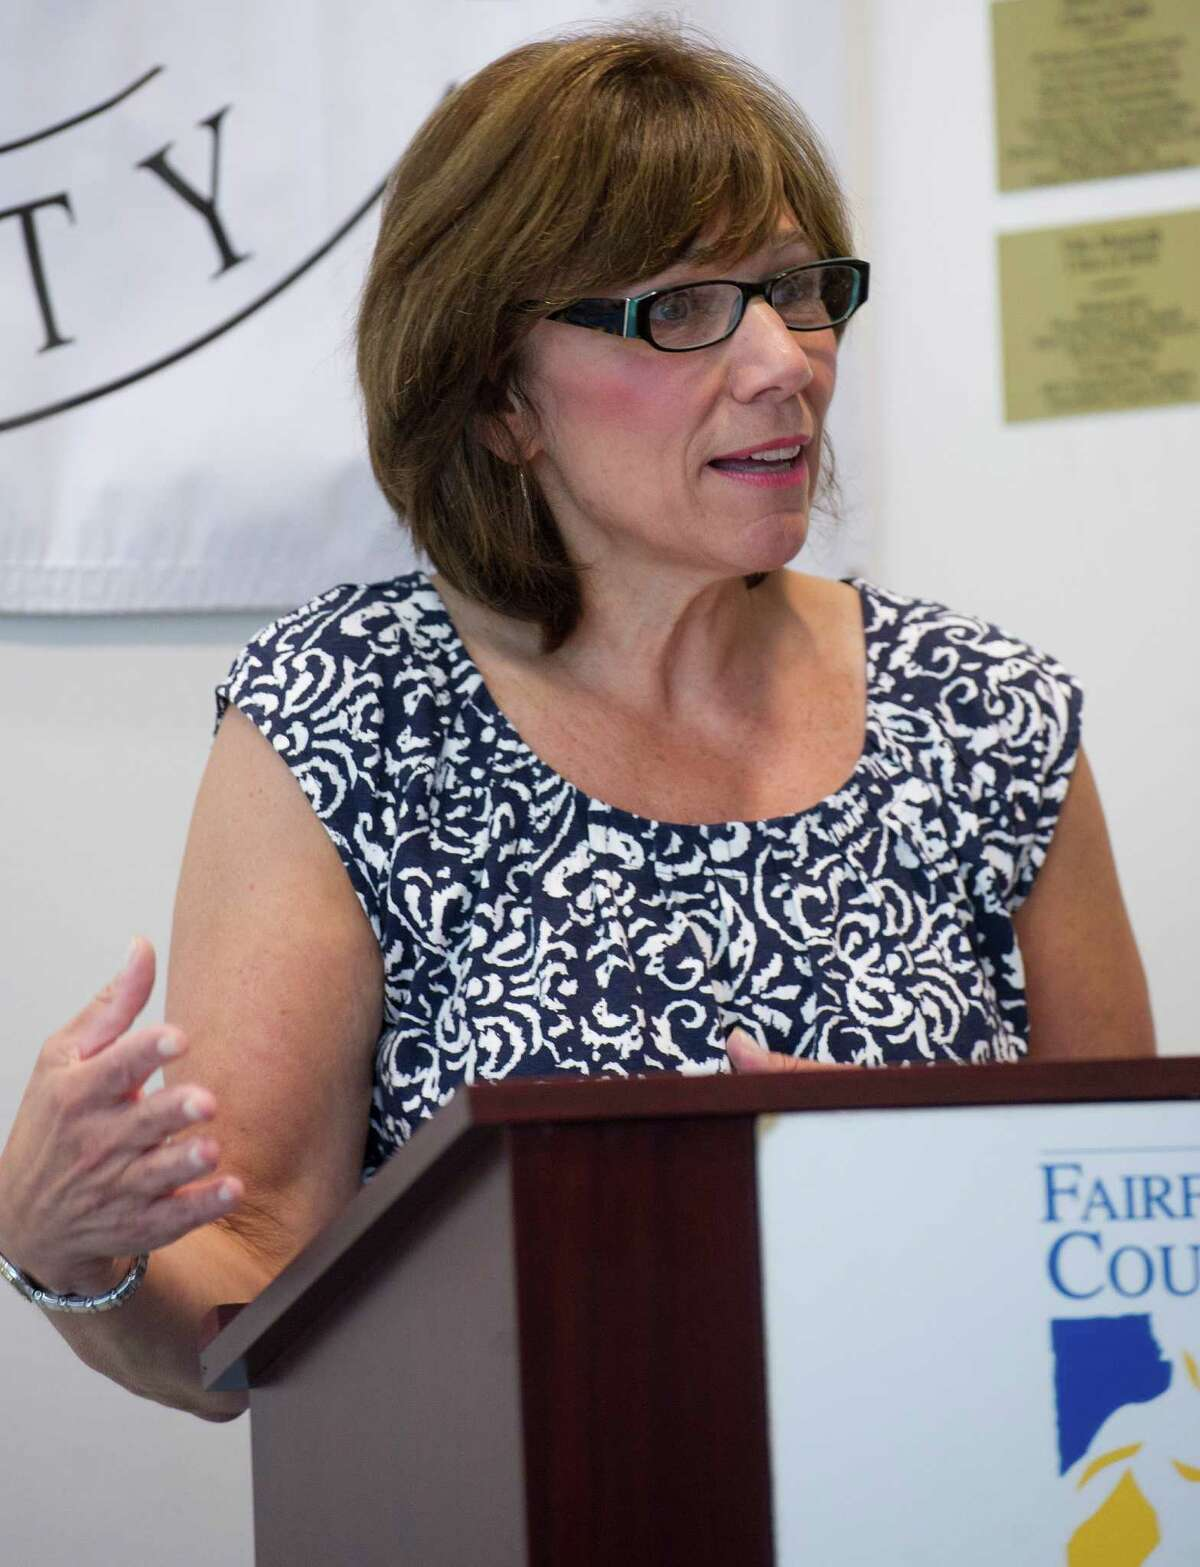 Cheryl Tiscia speaks during the Fairfield County Hall of Fame 2013 induction announcement after her sister, Allyson Rioux, was announced as an inductee into the James OâÄôRourke Amateur Wing at the University of Connecticut's Stamford campus on Wednesday, June 26, 2013.